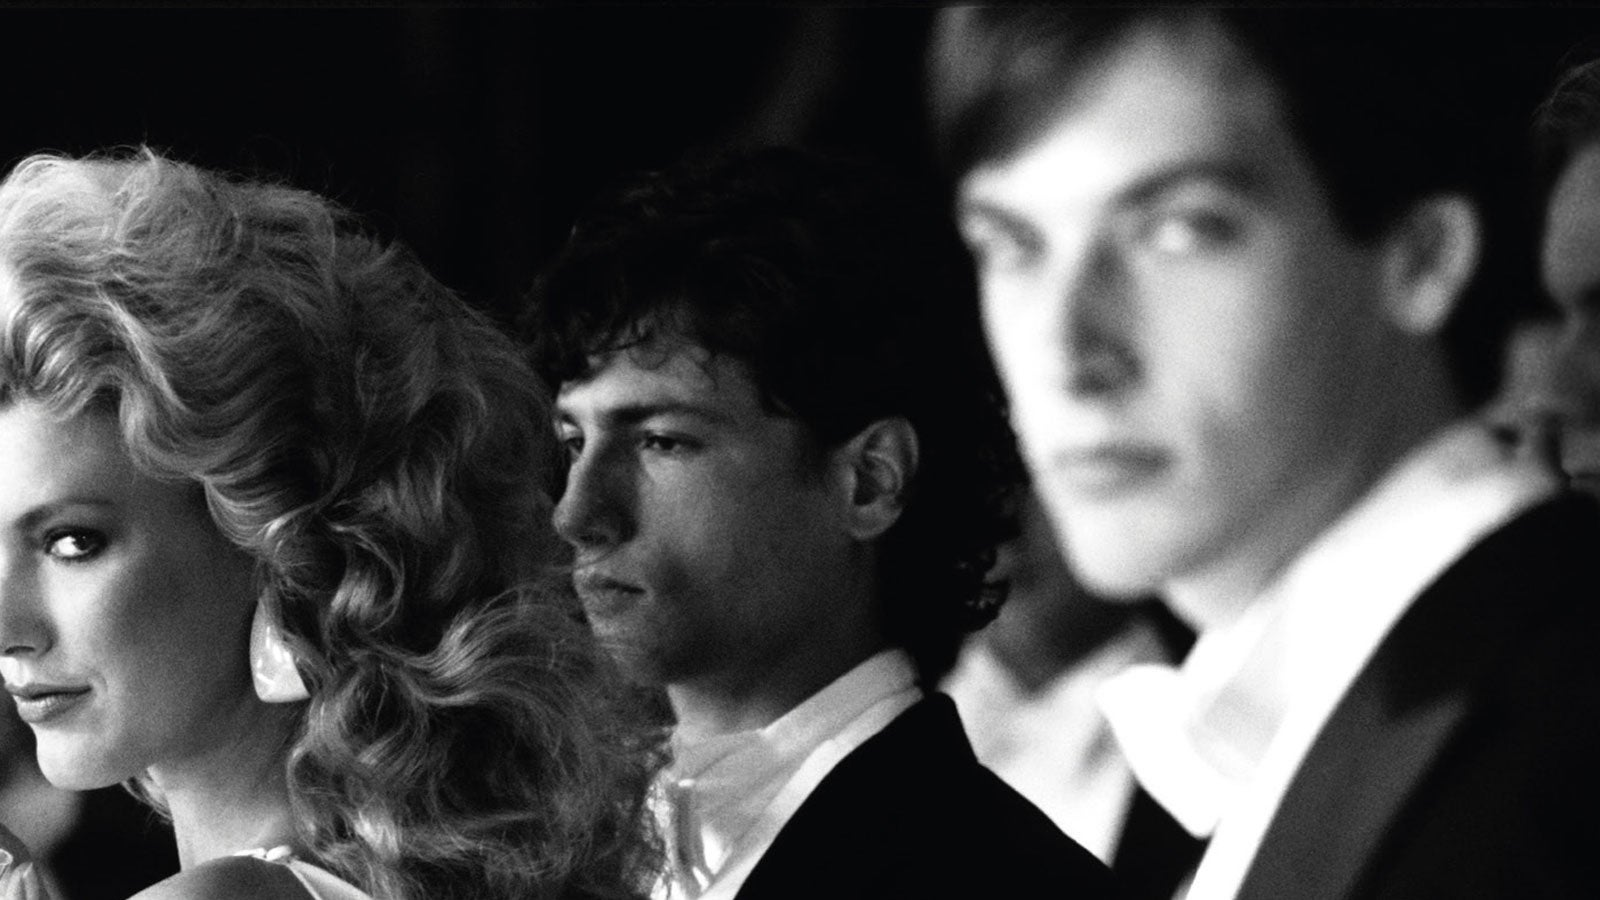 A woman and two men in black tie. A photograph taken from the cover of Alan Hollinghurst's The Line of Beauty